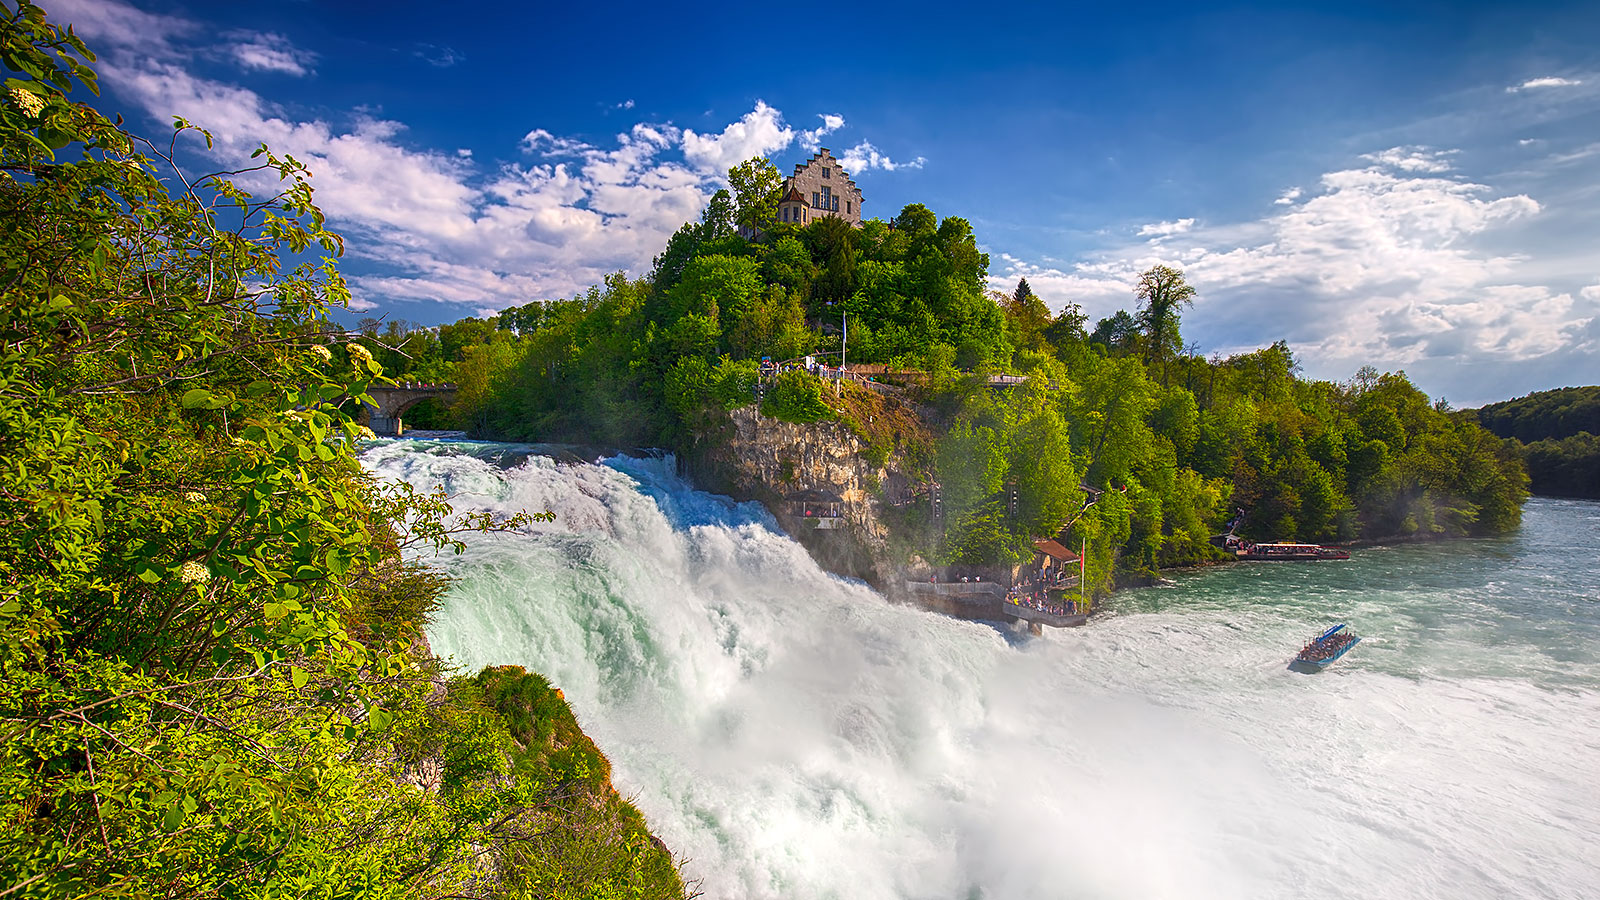 Europe's largest waterfall